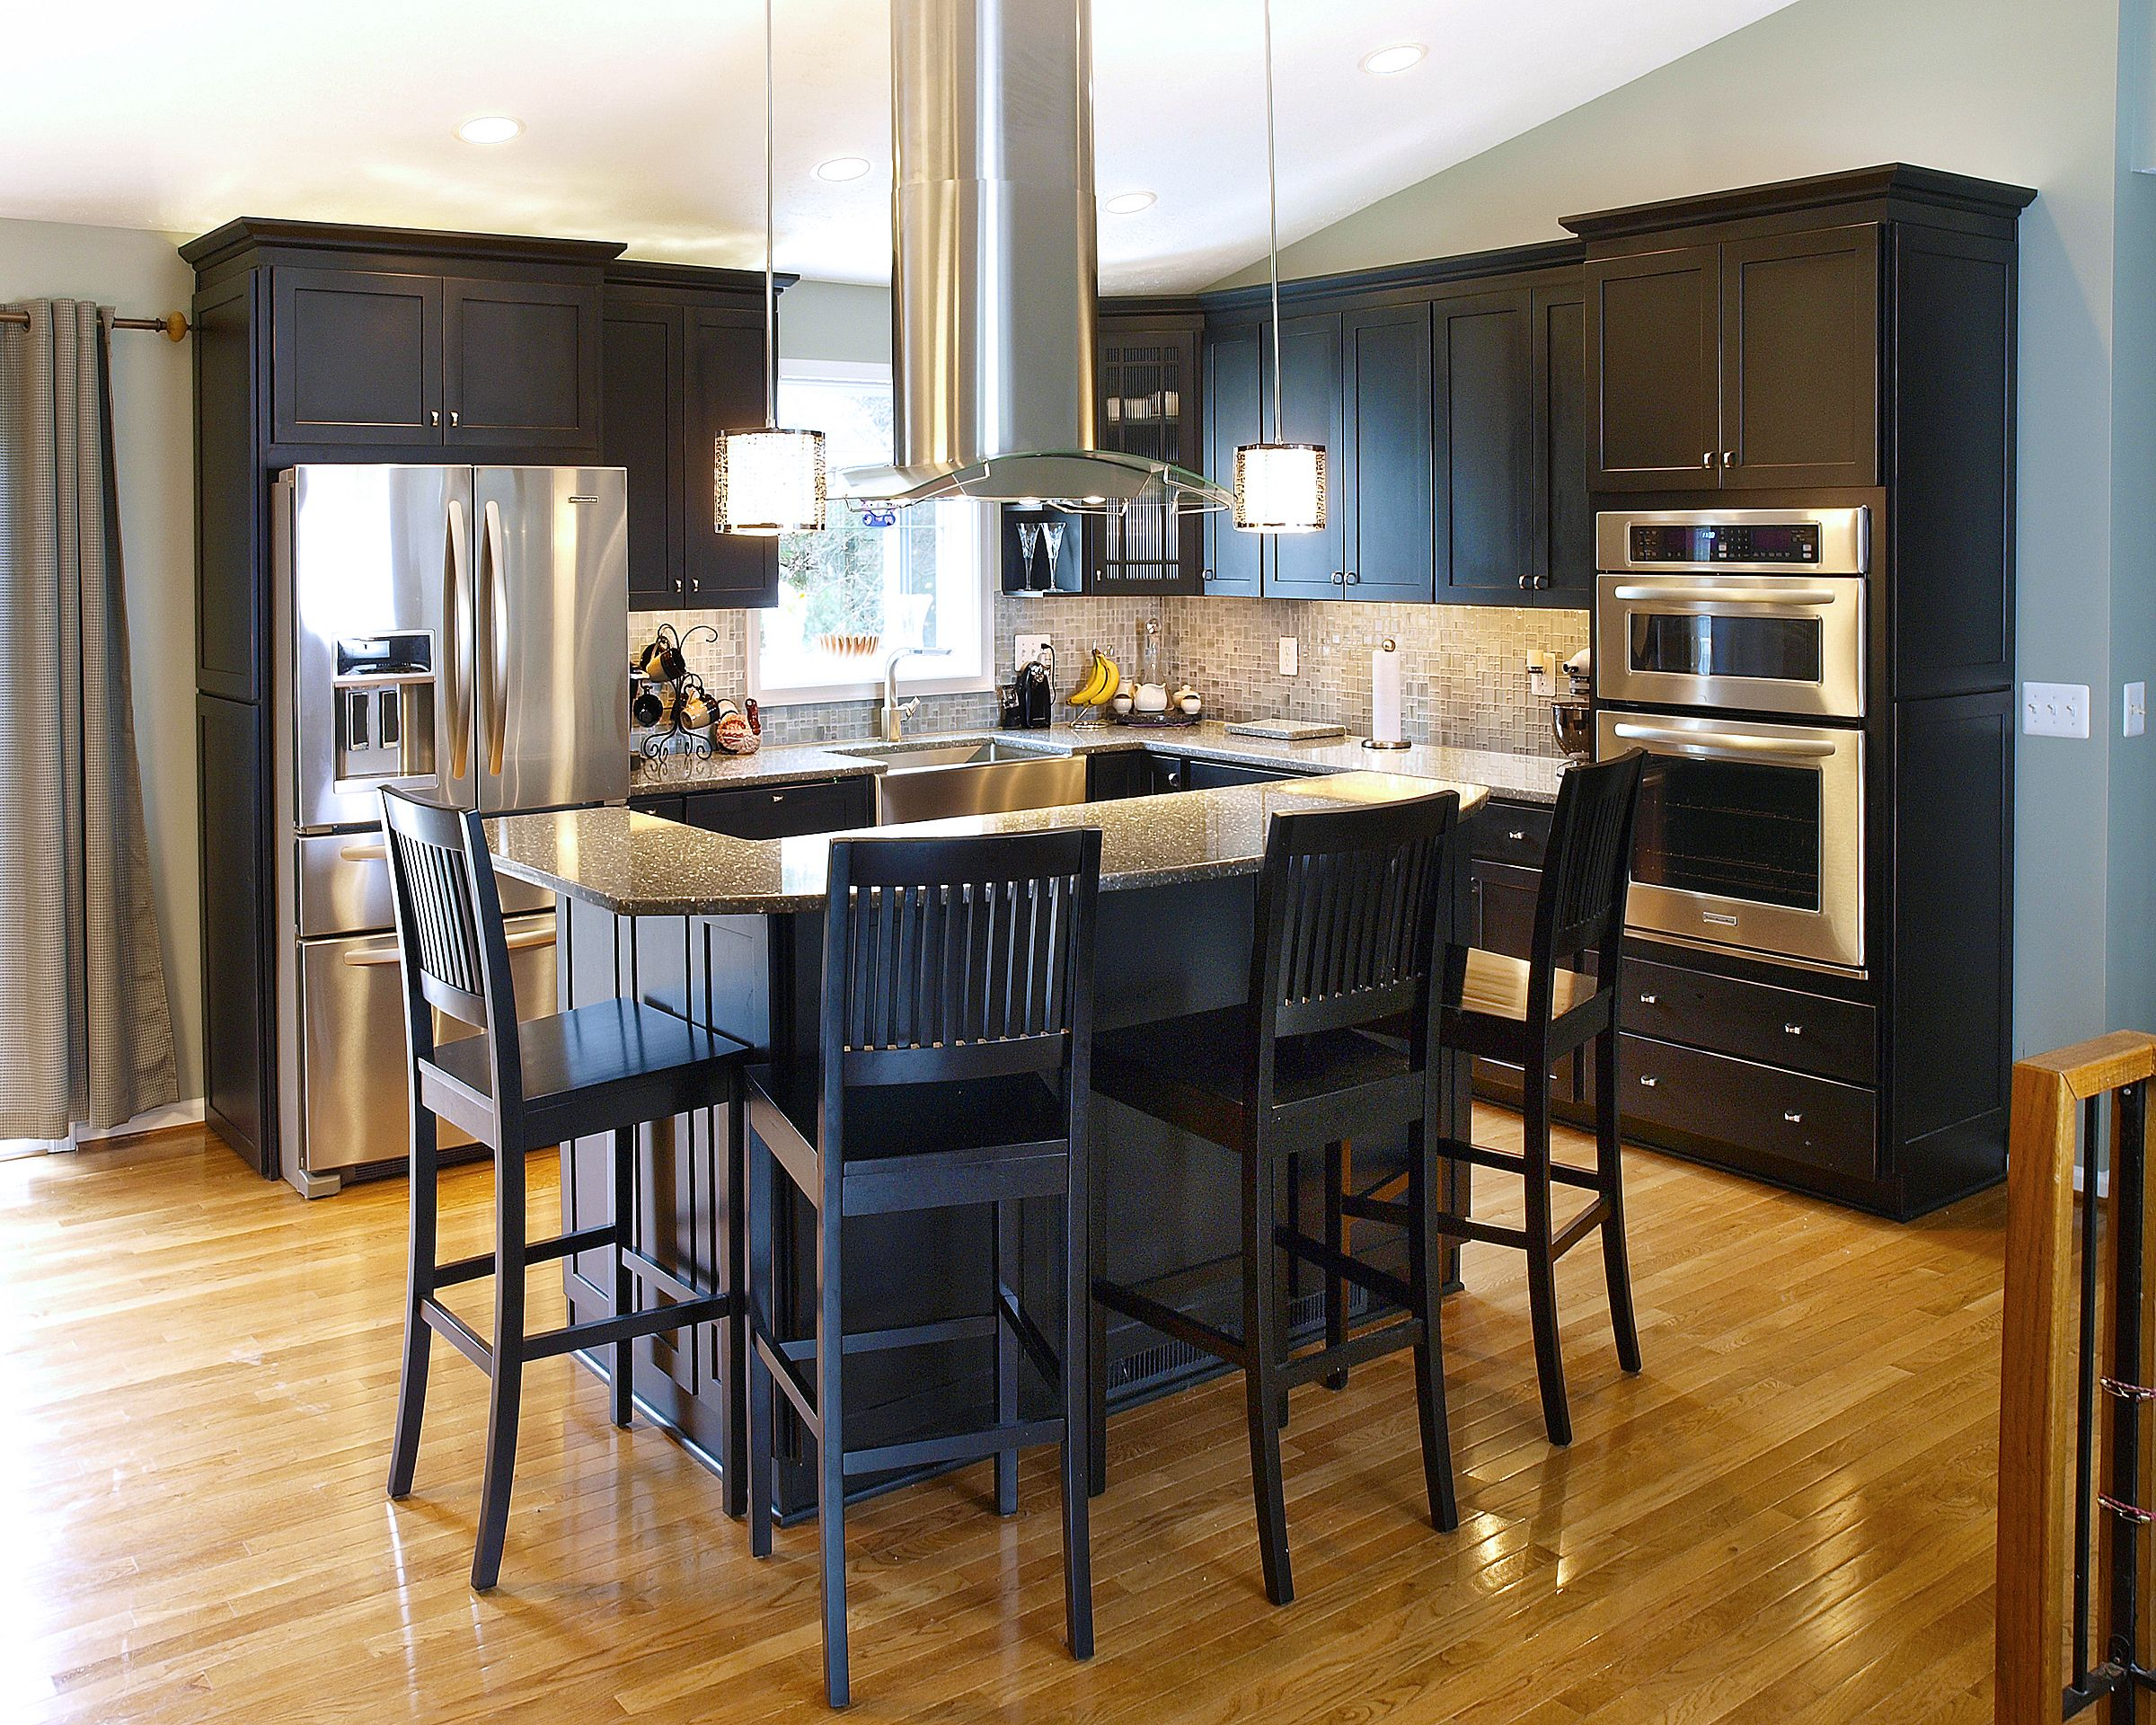 Contemporary Kitchen With Black Cabinets And Stainless Steel Appliances In Bel Air Md By Bel Ai With Images Contemporary Kitchen Renovation Kitchen Design Kitchen Remodel